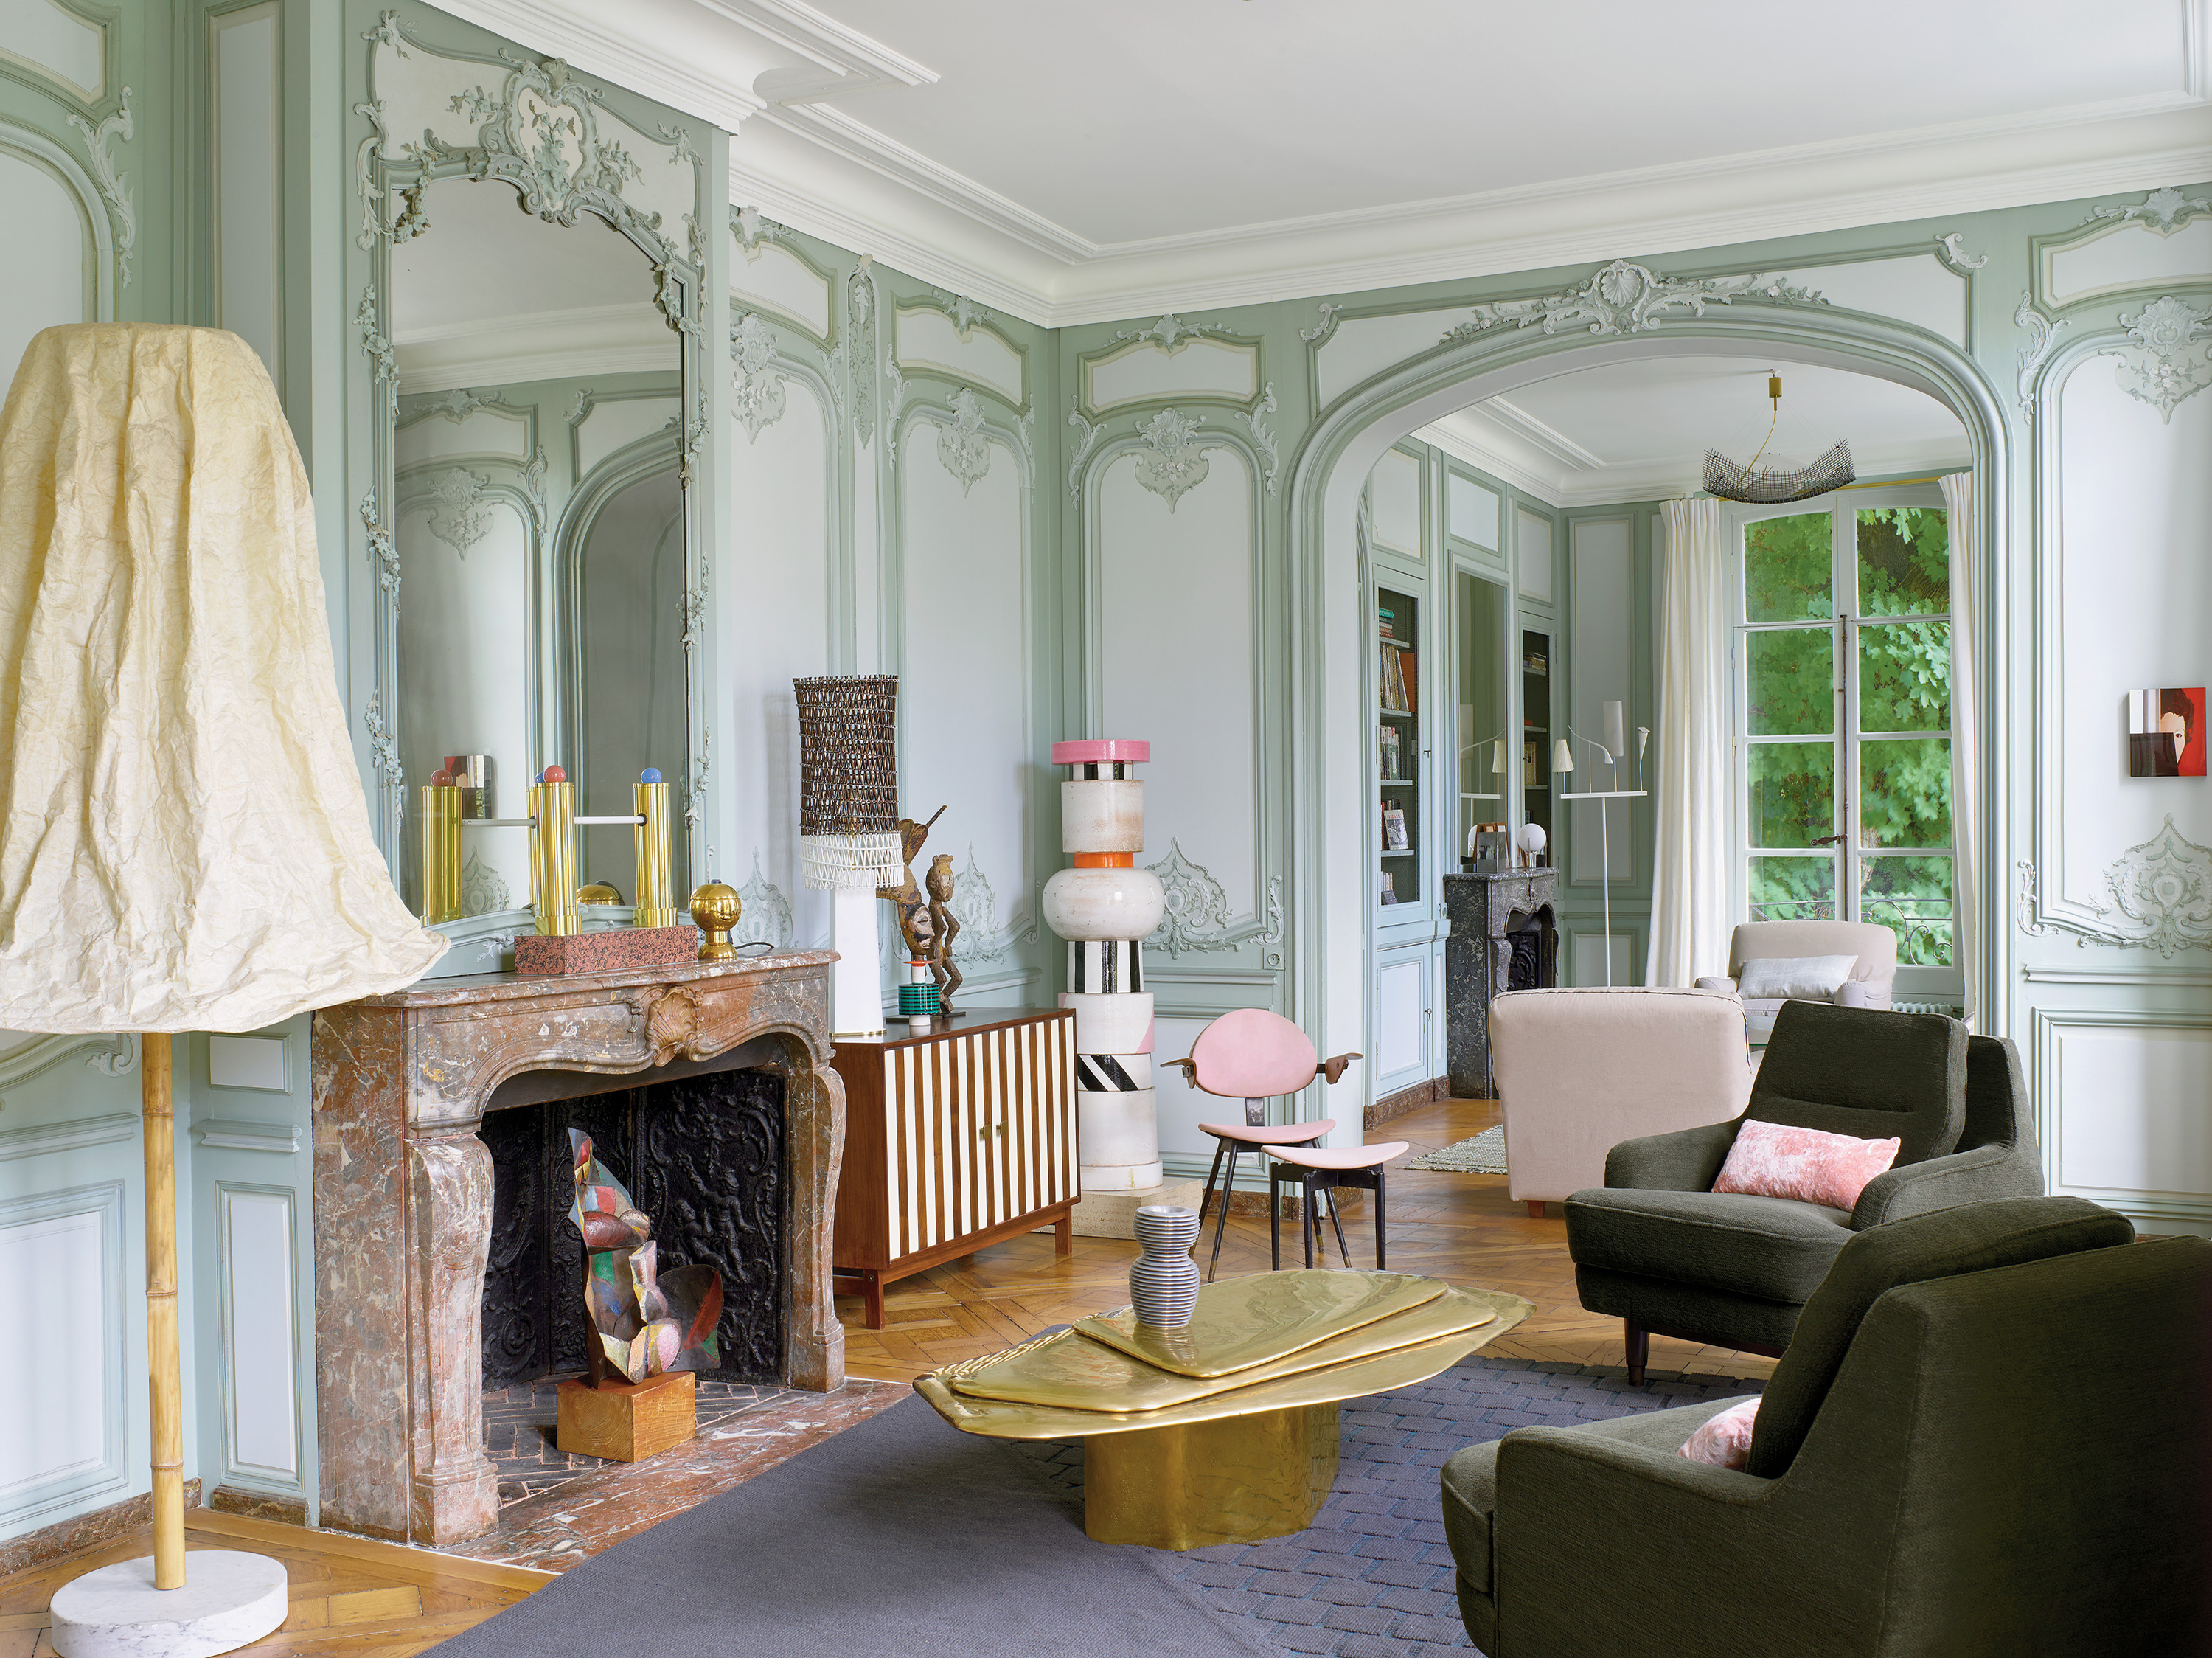 A ceramic stands in the corner of an intricate living room with molding and trim, marble fireplace, and tall French doors among a collection of modern furniture and artwork.